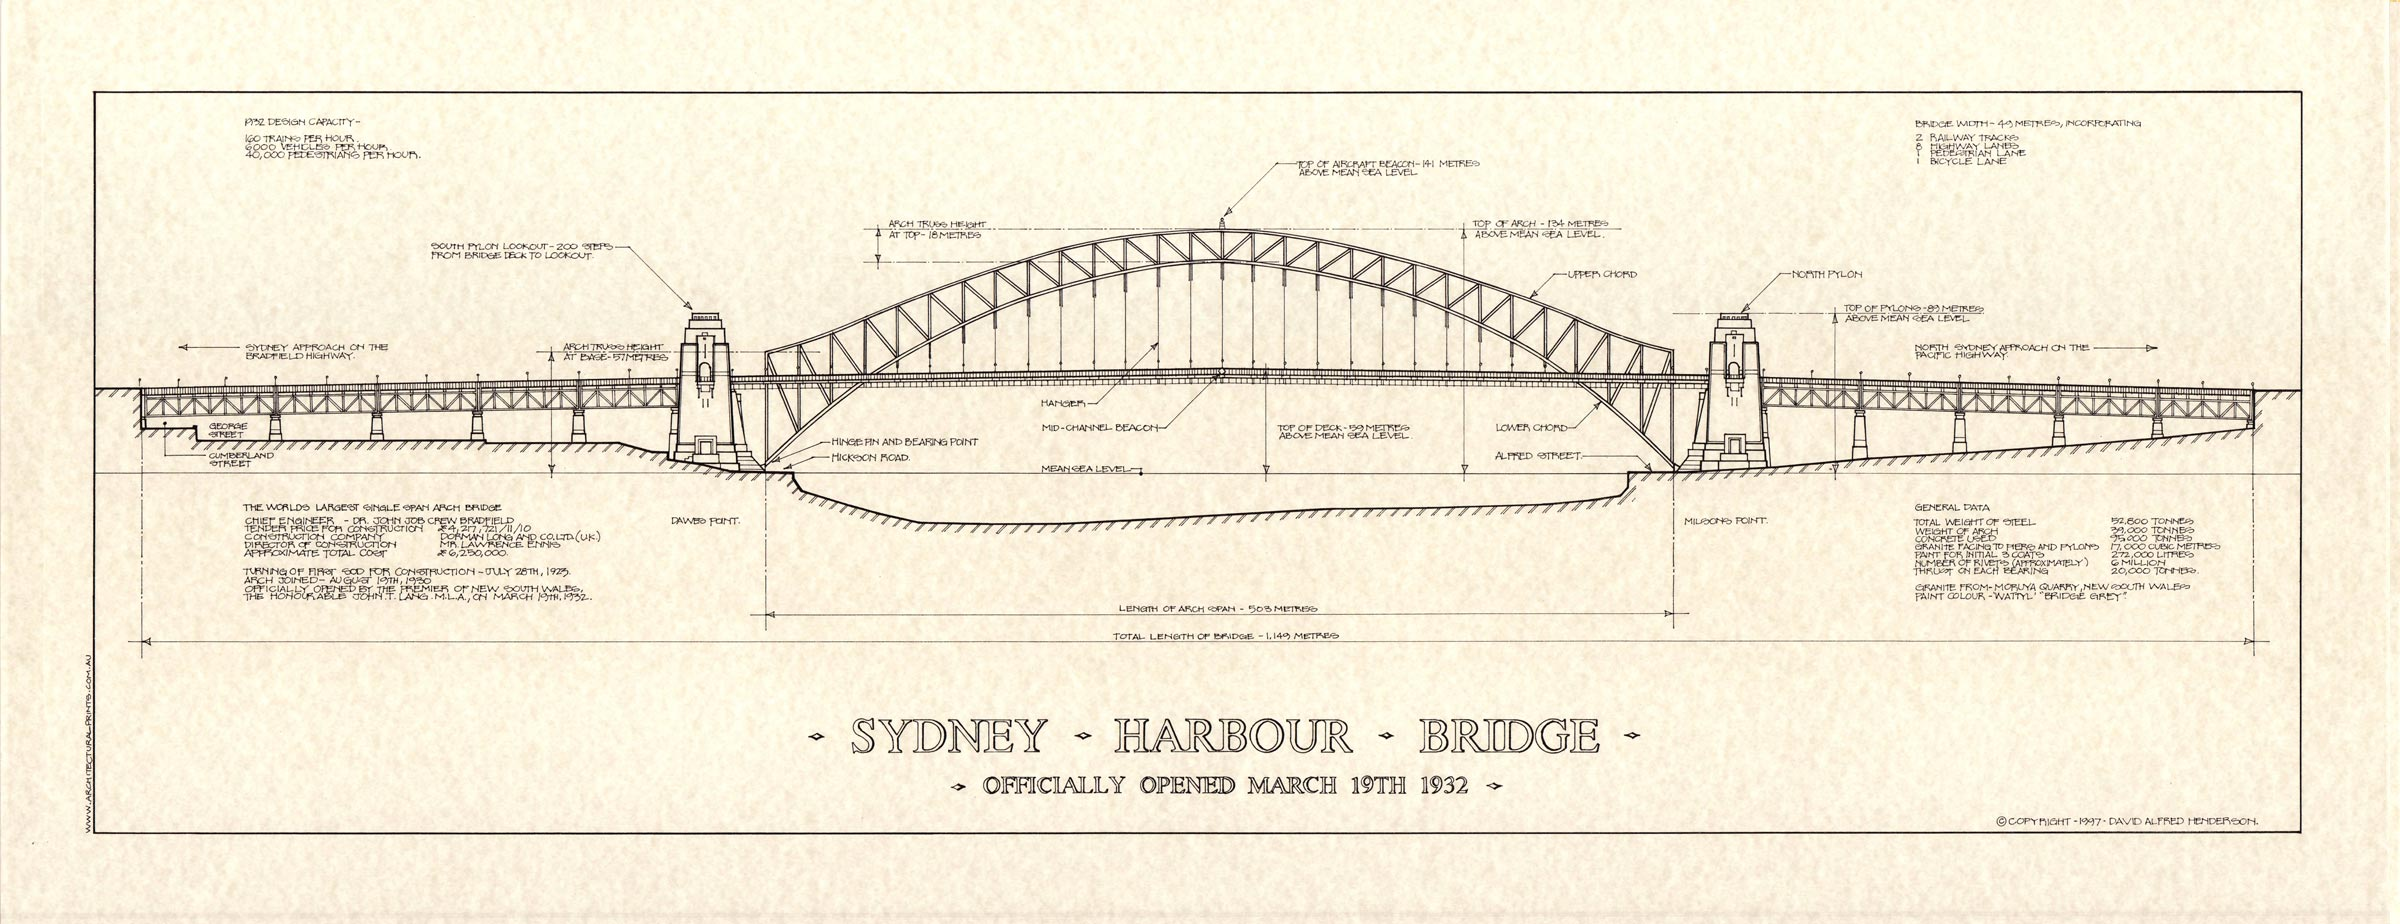 Sydney harbour bridge print architectural prints for Print architectural drawings